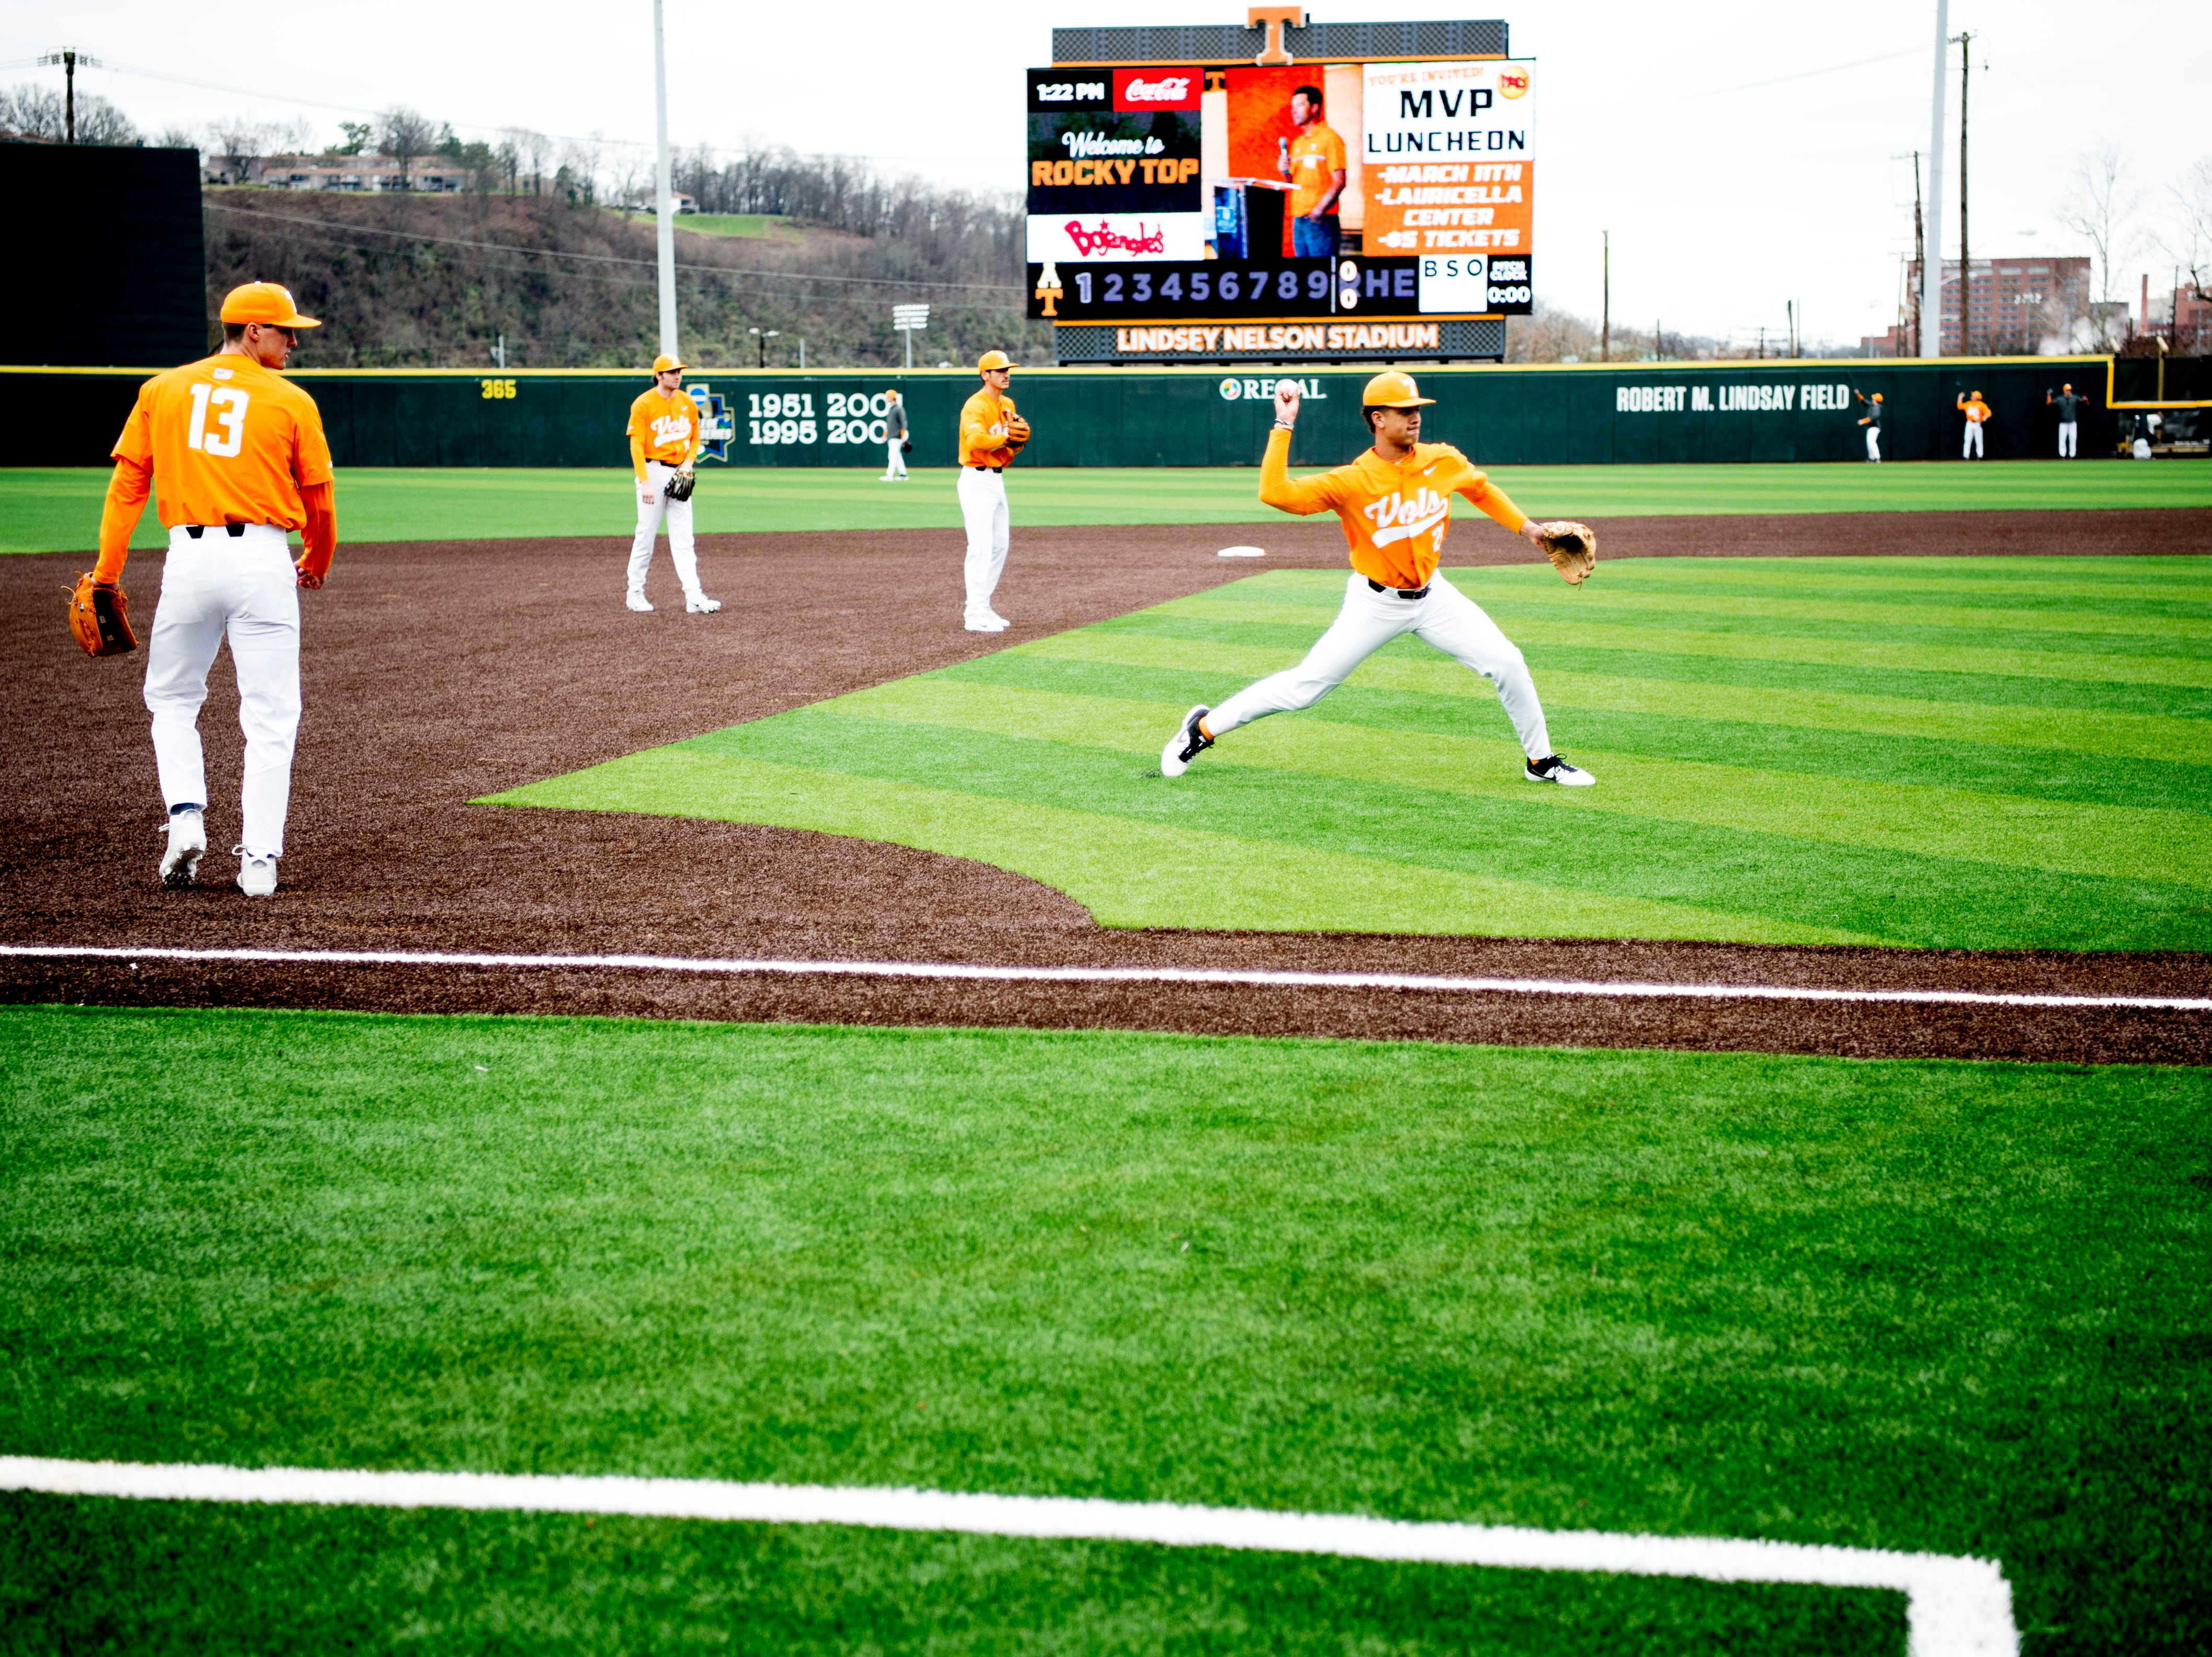 Tennessee players warm up on the all-new turf field at Lindsey Nelson Stadium in Knoxville, Tennessee on Saturday, February 16, 2019. The pitchers mound is the only part of the field that remains dirt.